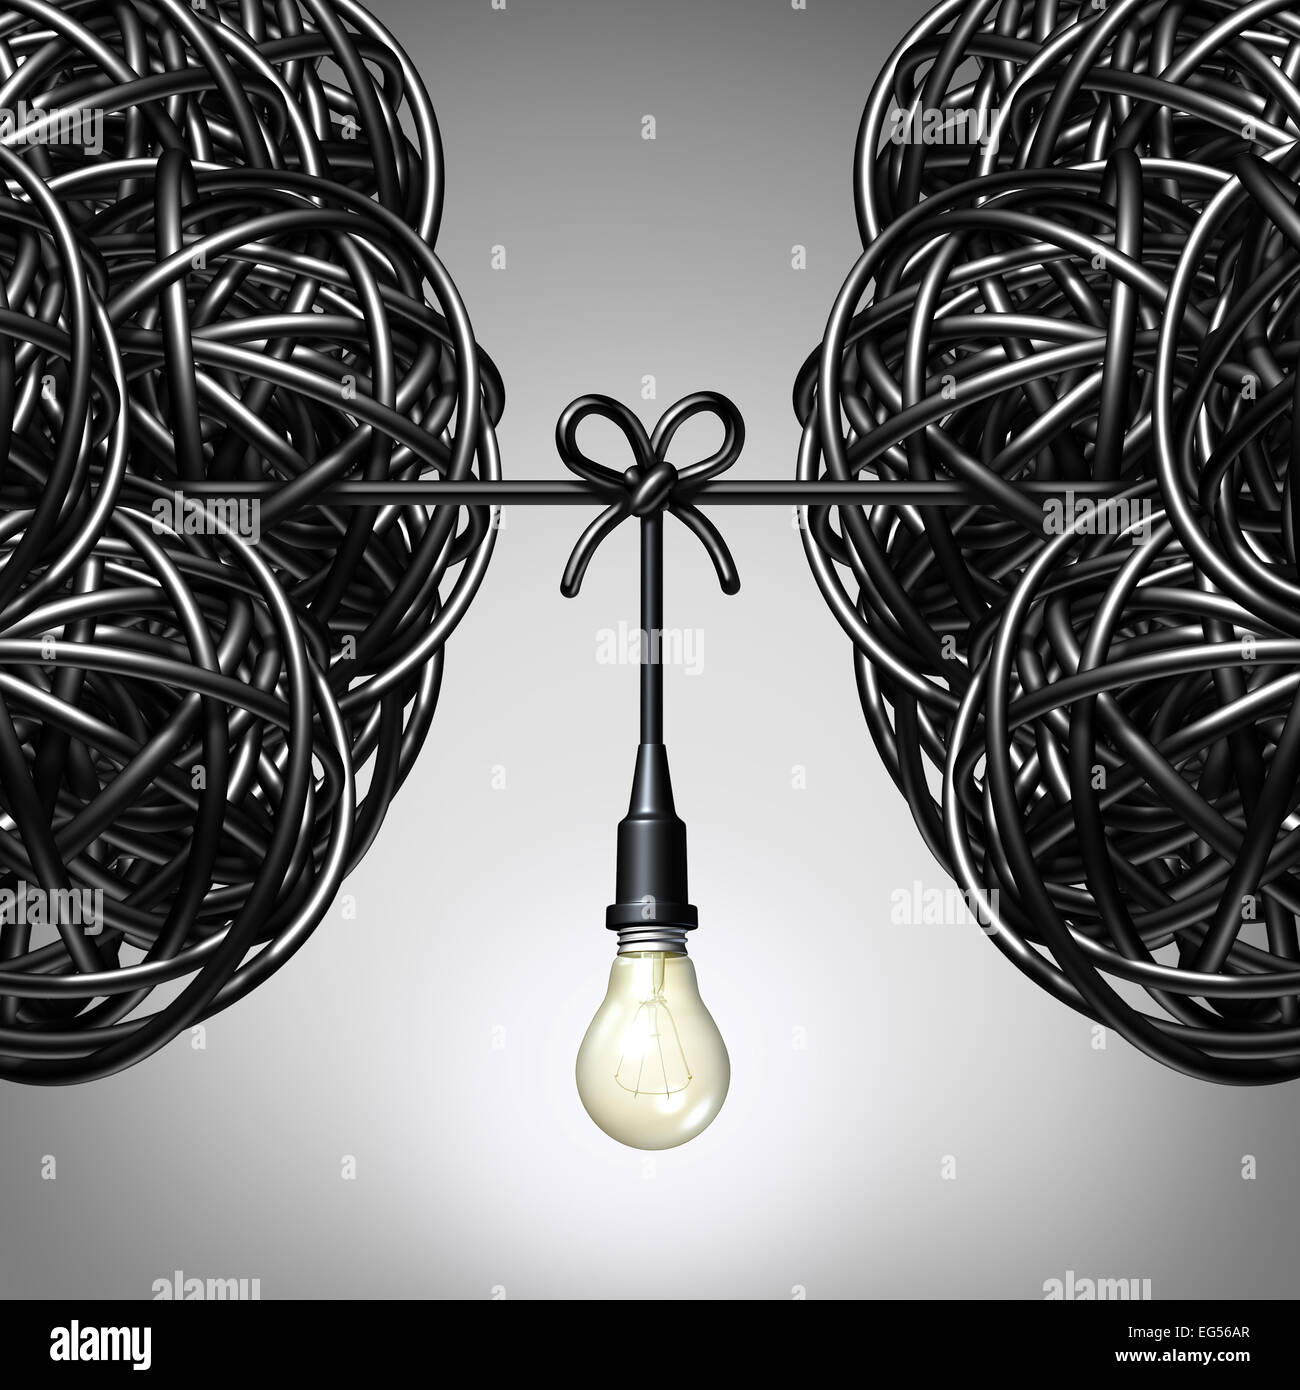 Team ideas and collaboration concept as two groups of tangled electric cord or wire with a light bulb connection - Stock Image